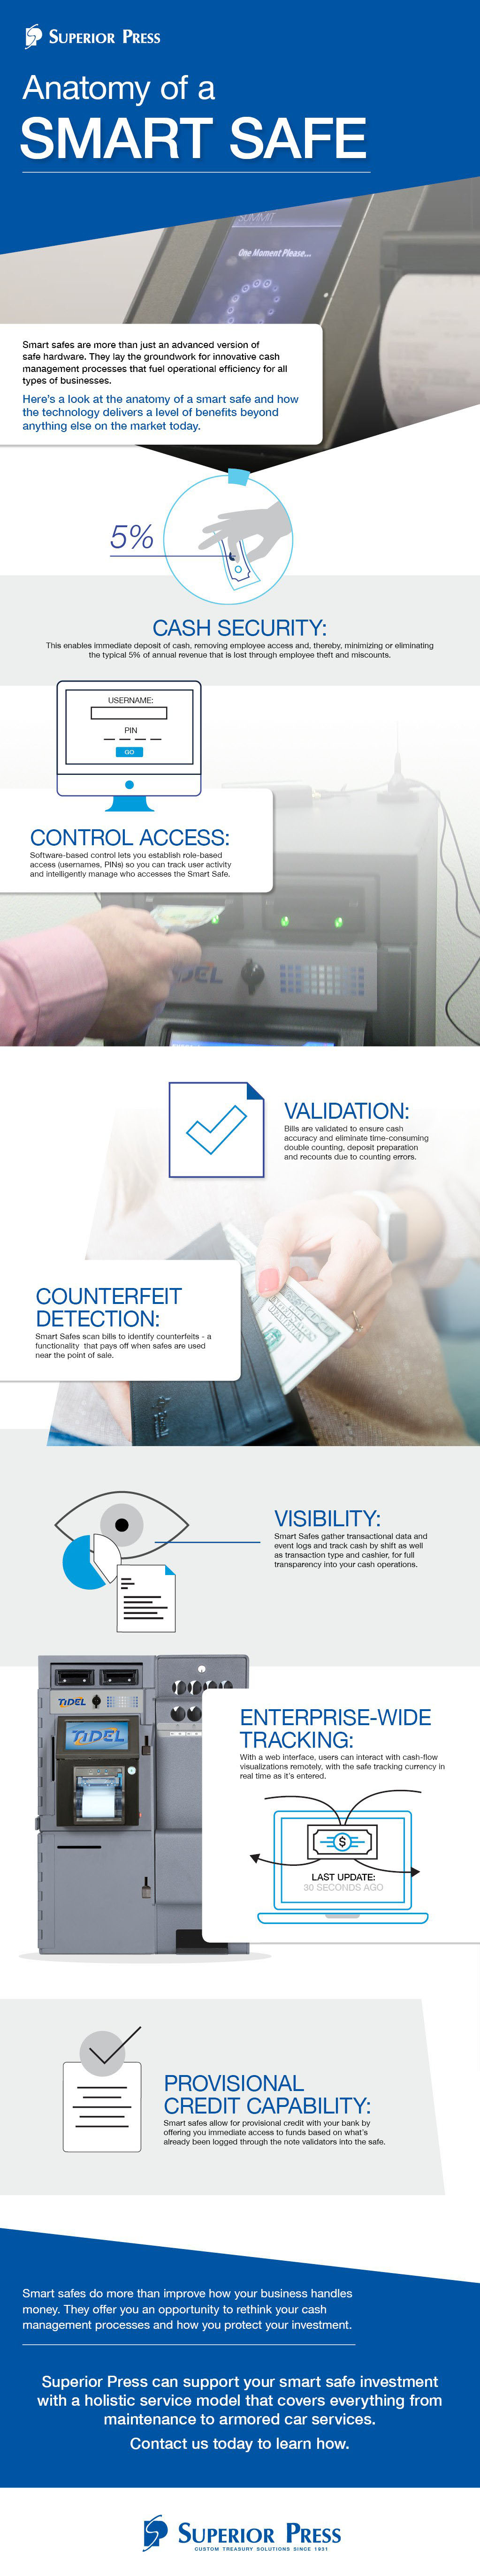 The anatomy of a smart safe [infographic]